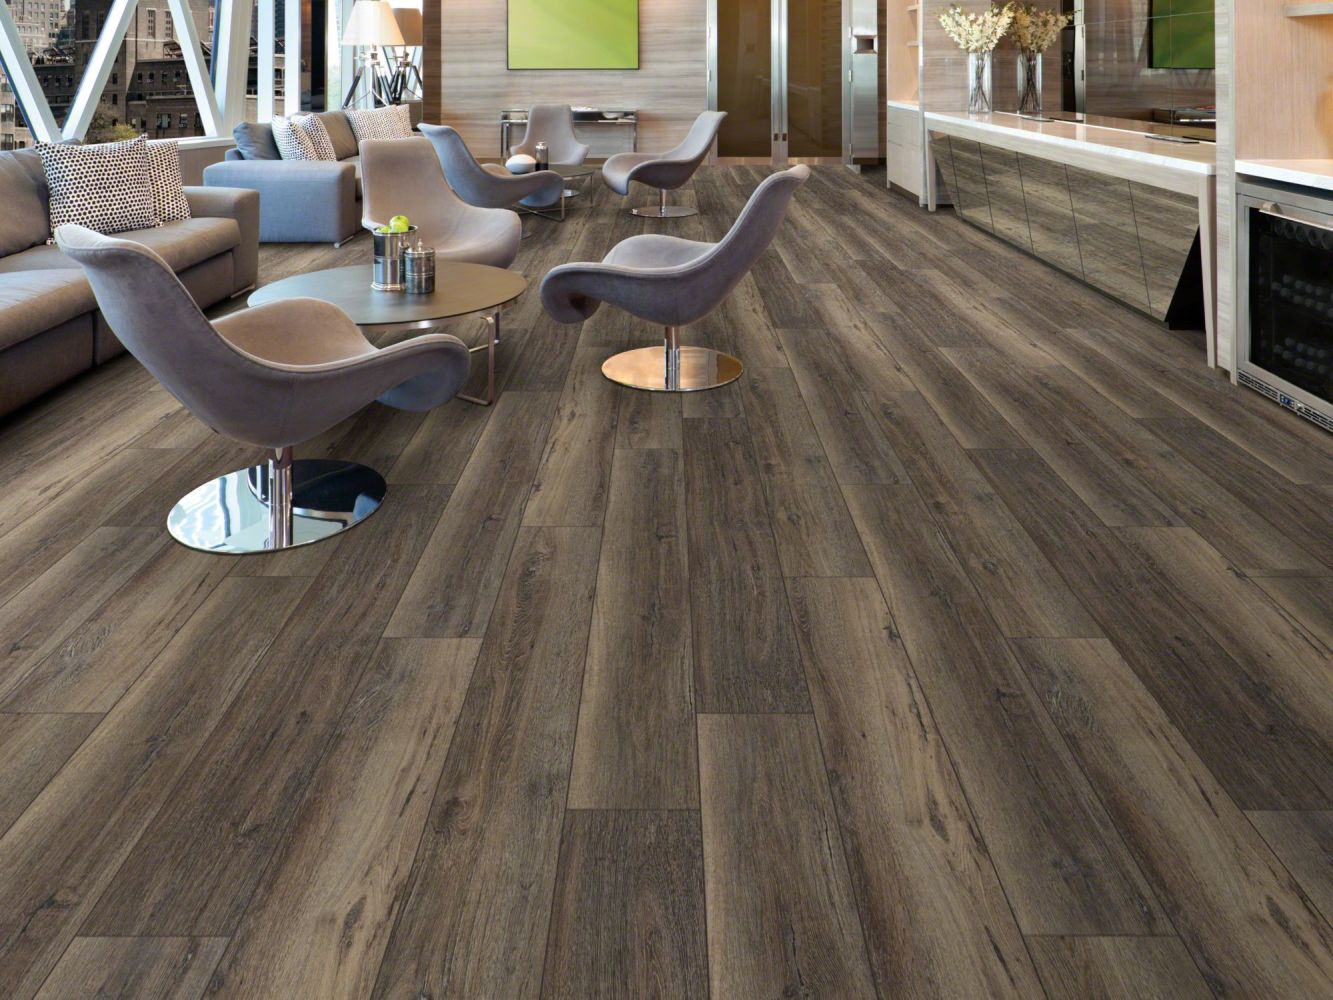 Shaw Floors Contest Upland Oak 00795_SMR03